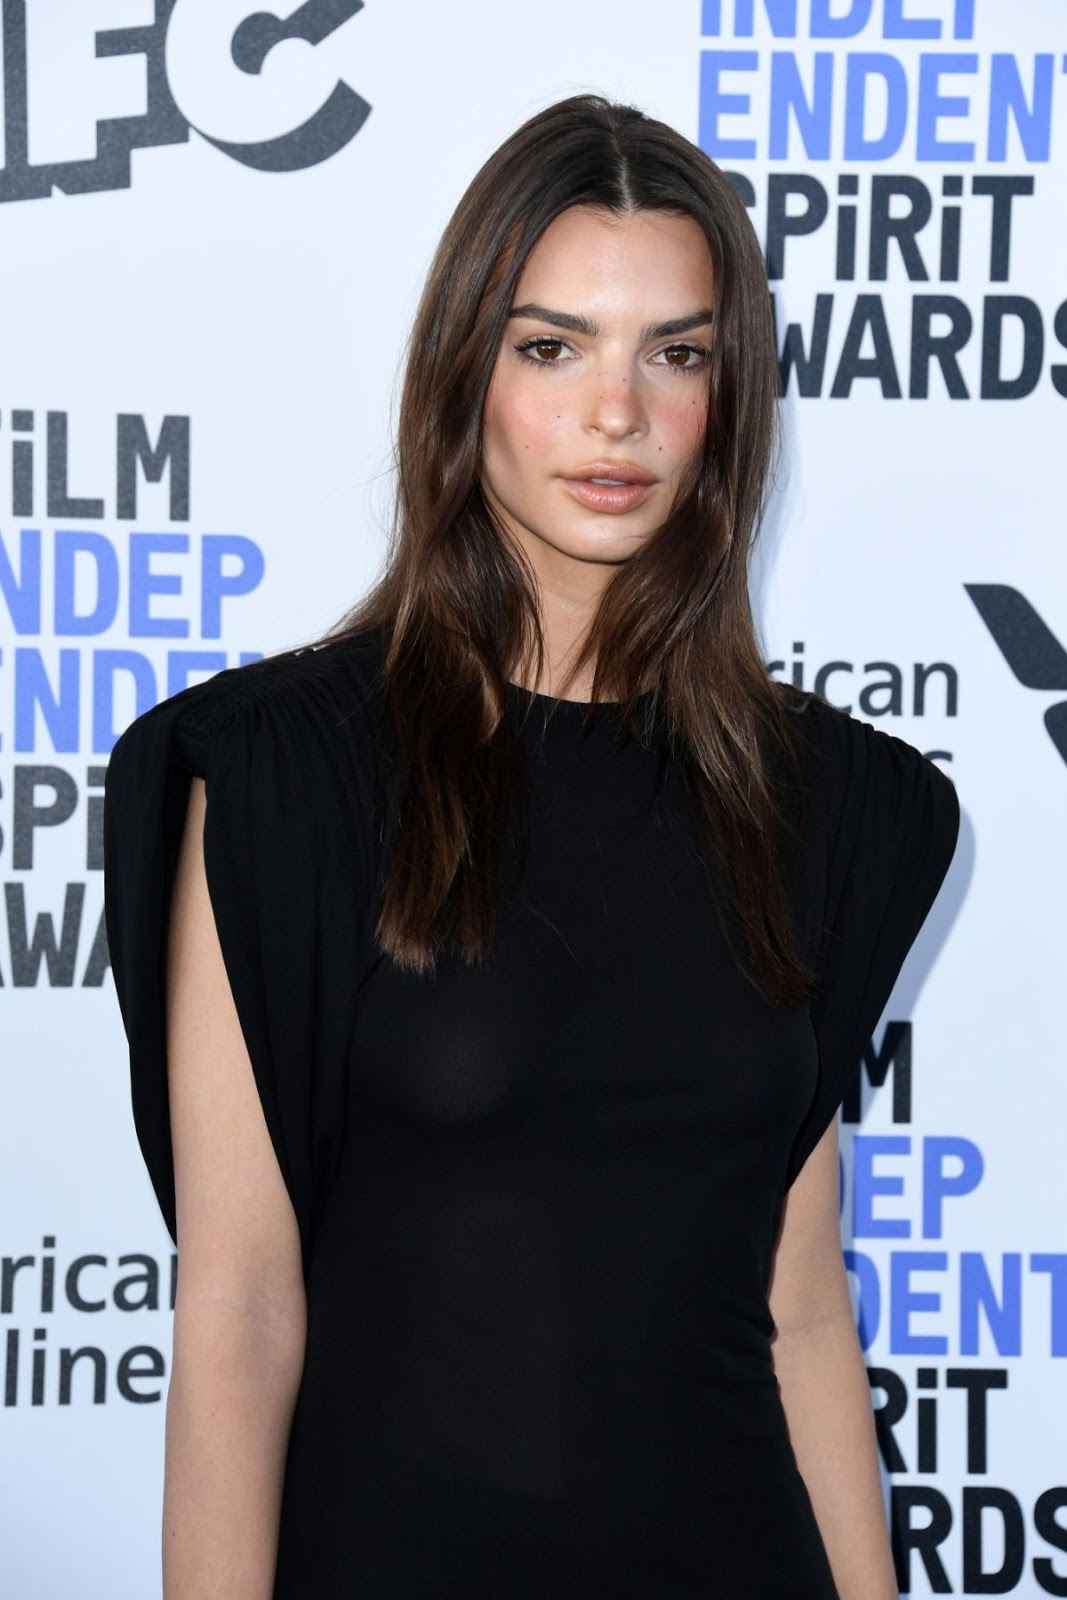 Emily Ratajkowski at 2020 Film Independent Spirit Awards in Santa Monica - Sat Feb 08 2020